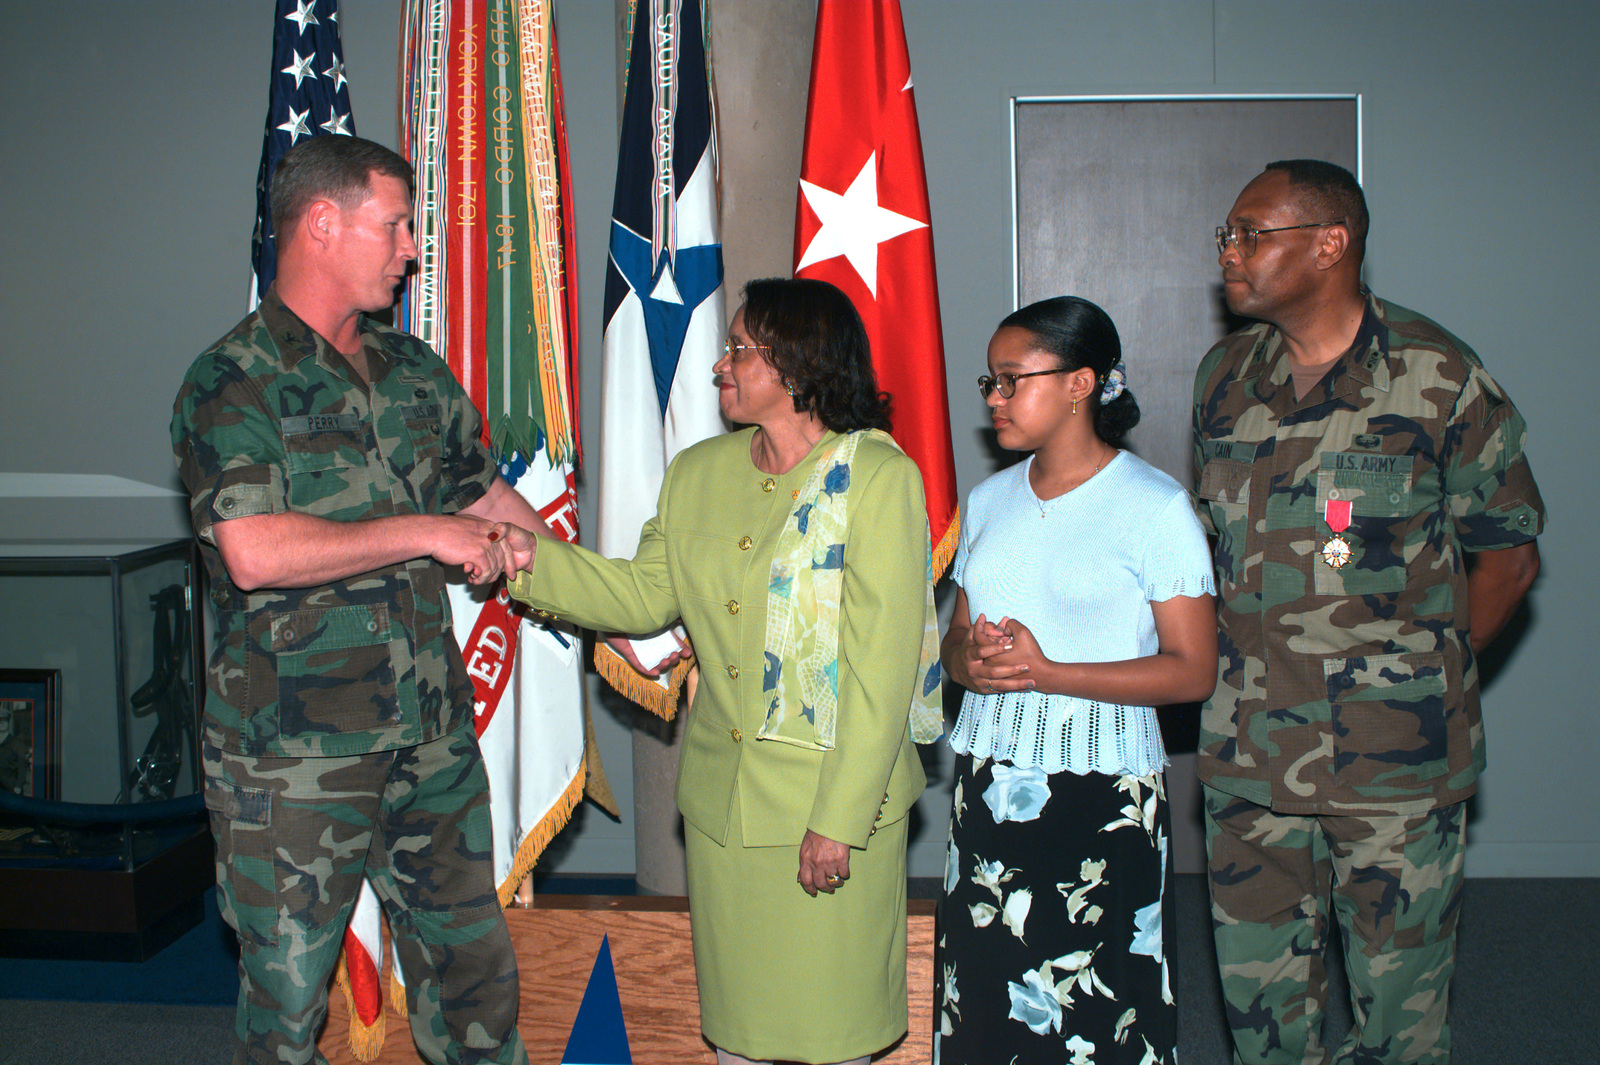 COL Ronald Perry (left), Deputy G3, III Corps and Fort Hood